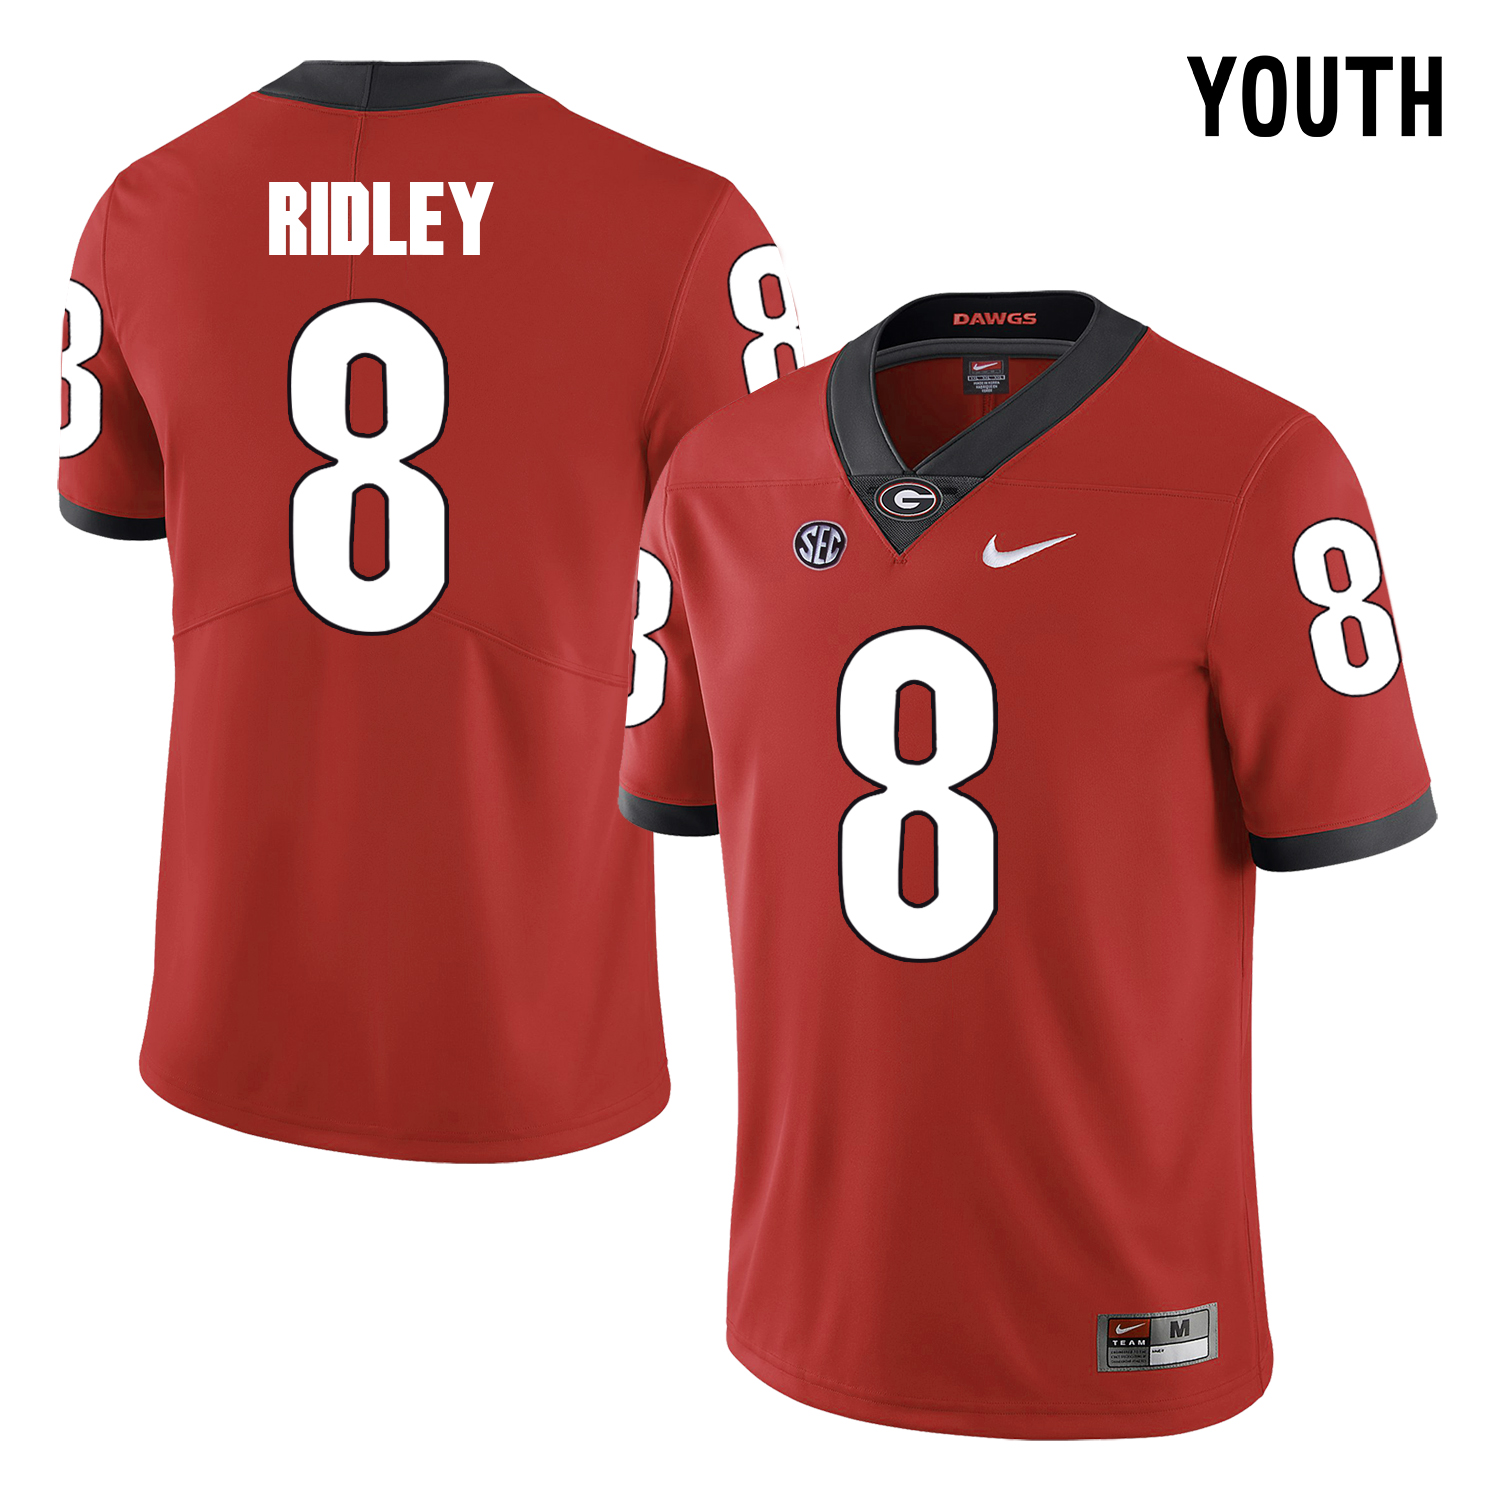 Georgia Bulldogs 8 Riley Ridley Red Youth College Football Jersey